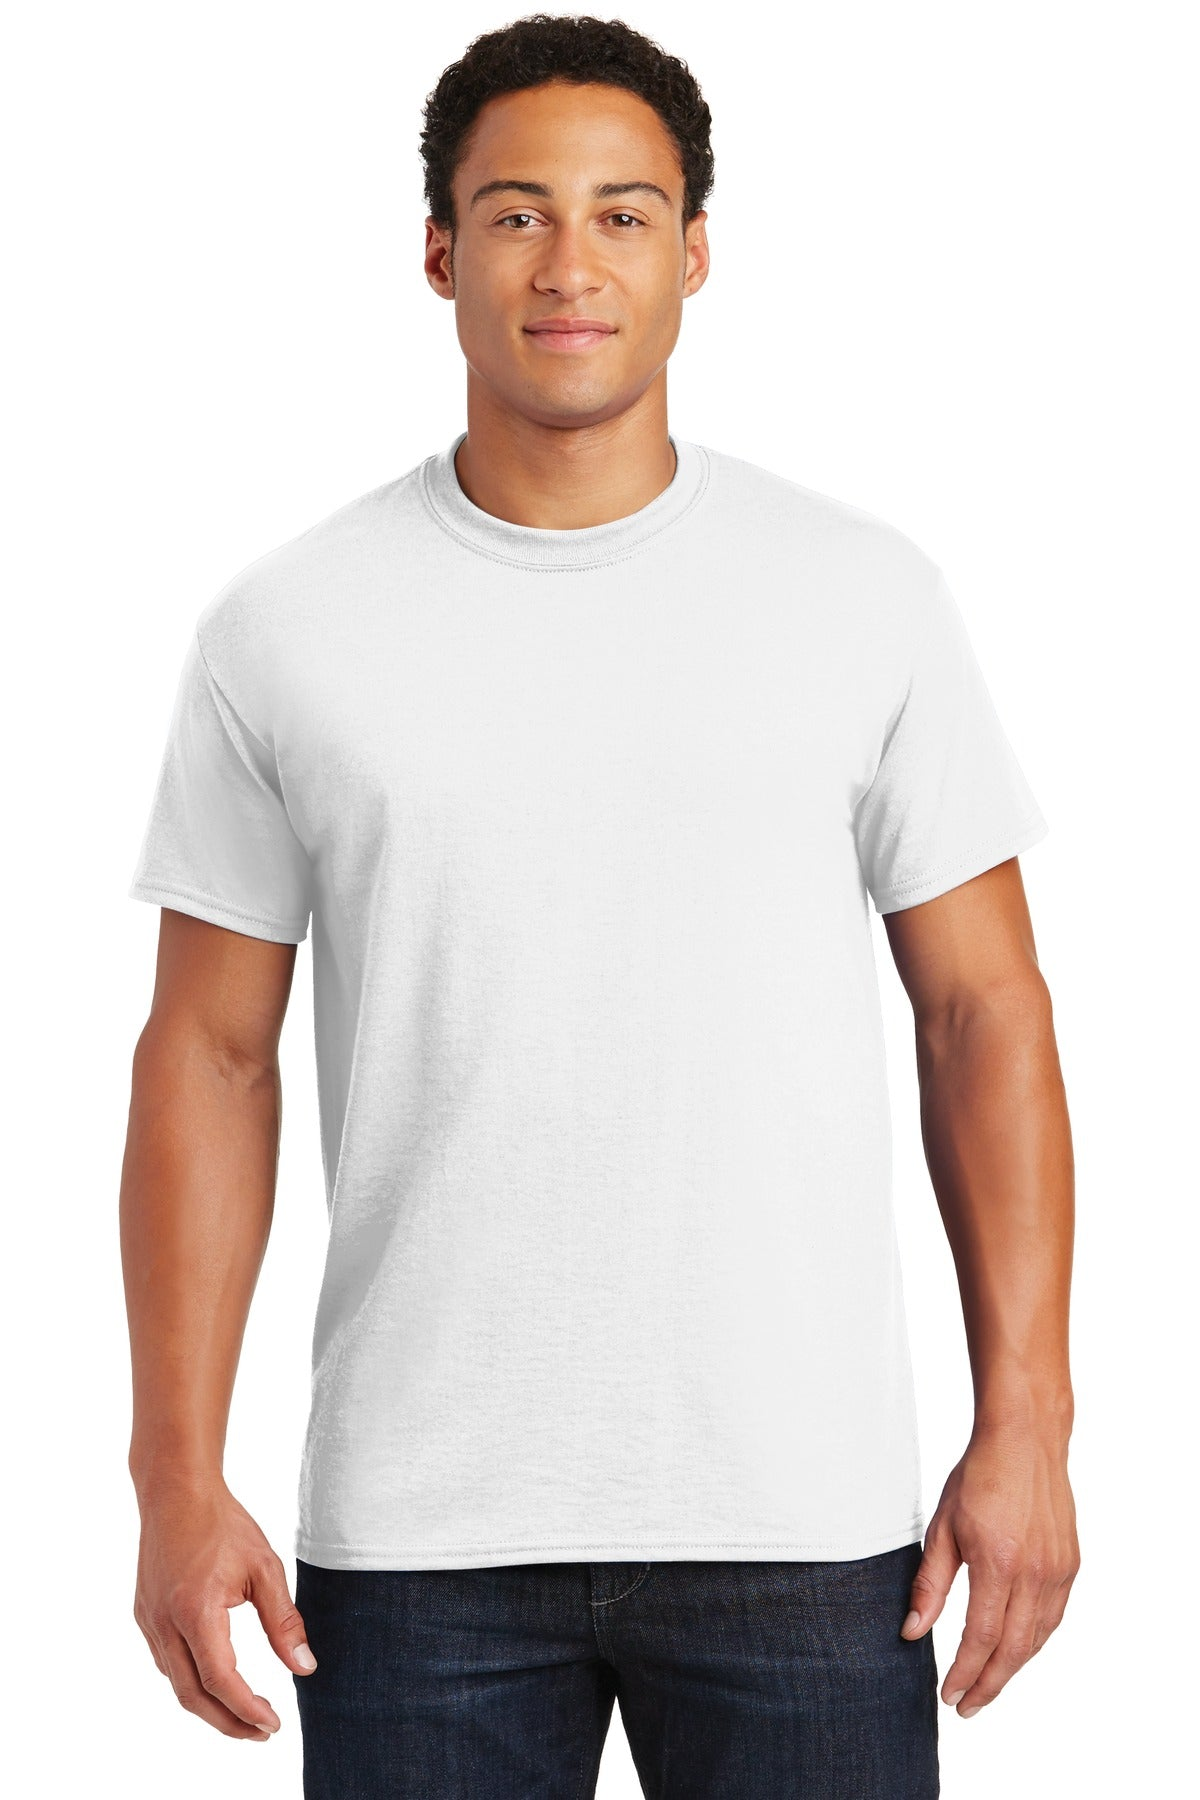 White Gildan DryBlend 50 Cotton/50 Poly T-Shirt.